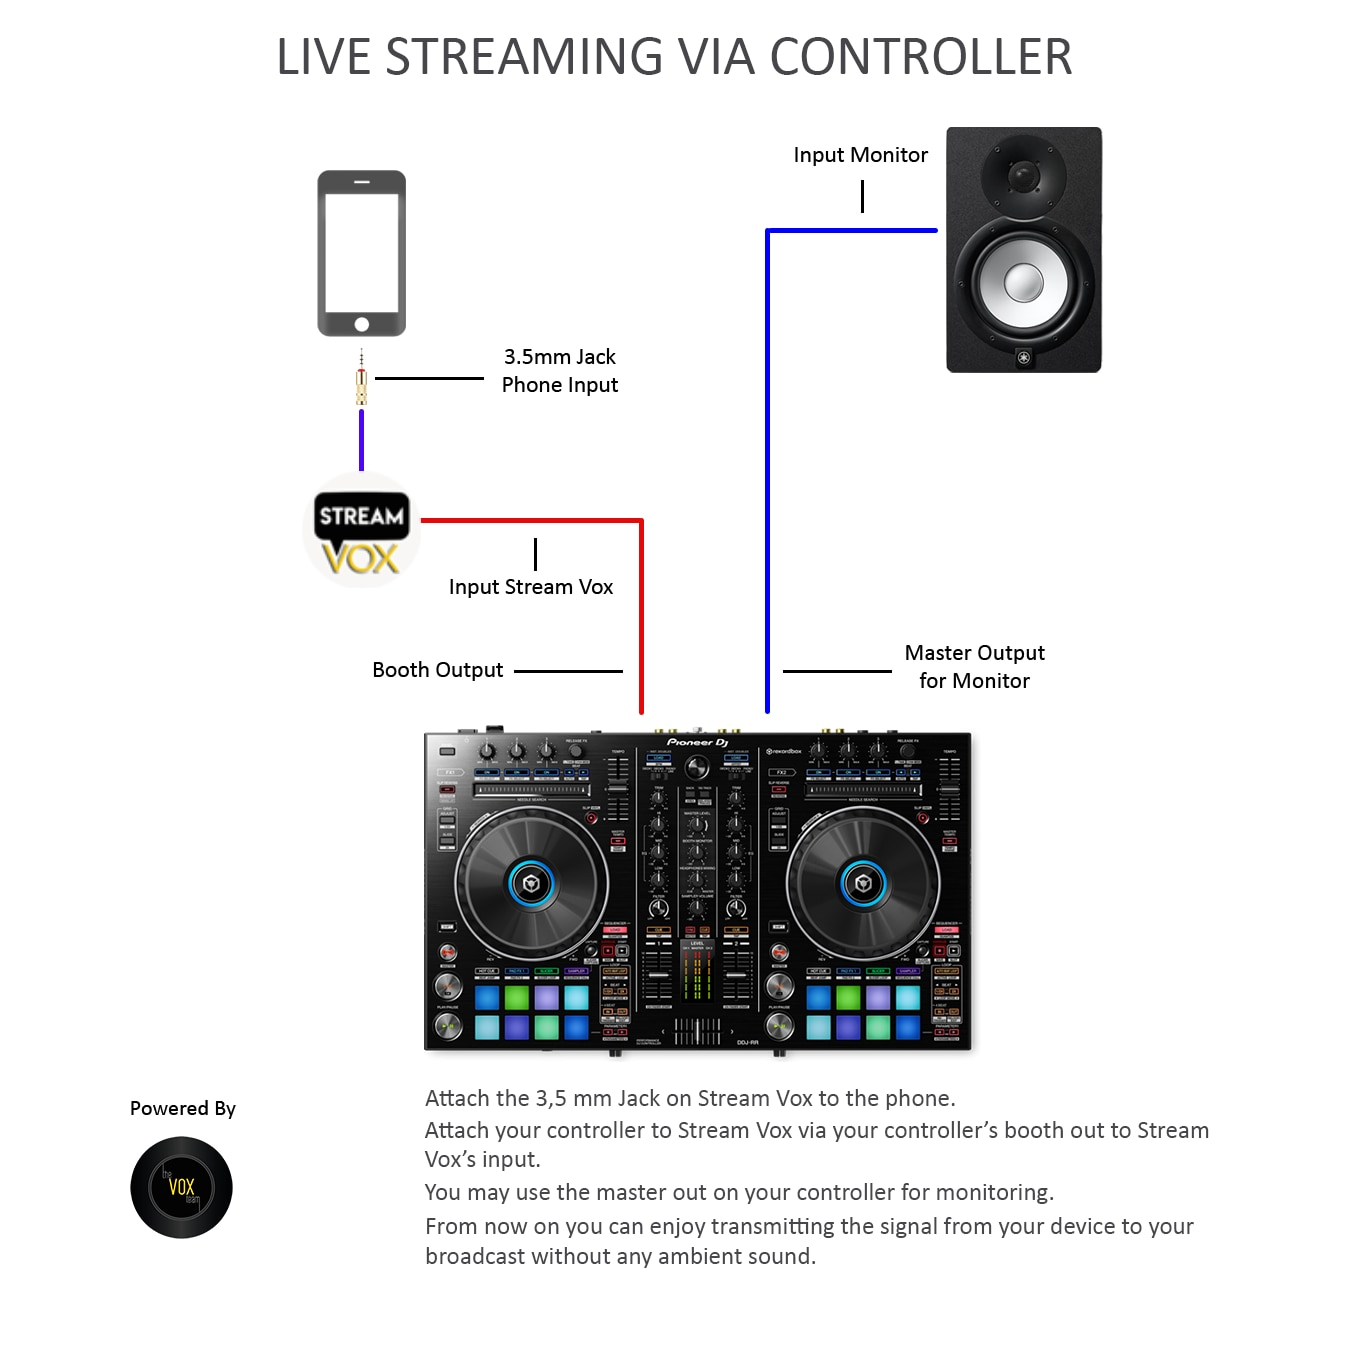 Streamvox Portable Audio Interface For Live Streaming Instagram Recording on All Phones & Tablet from Mixer Setup Sound Card SV3 enlarge